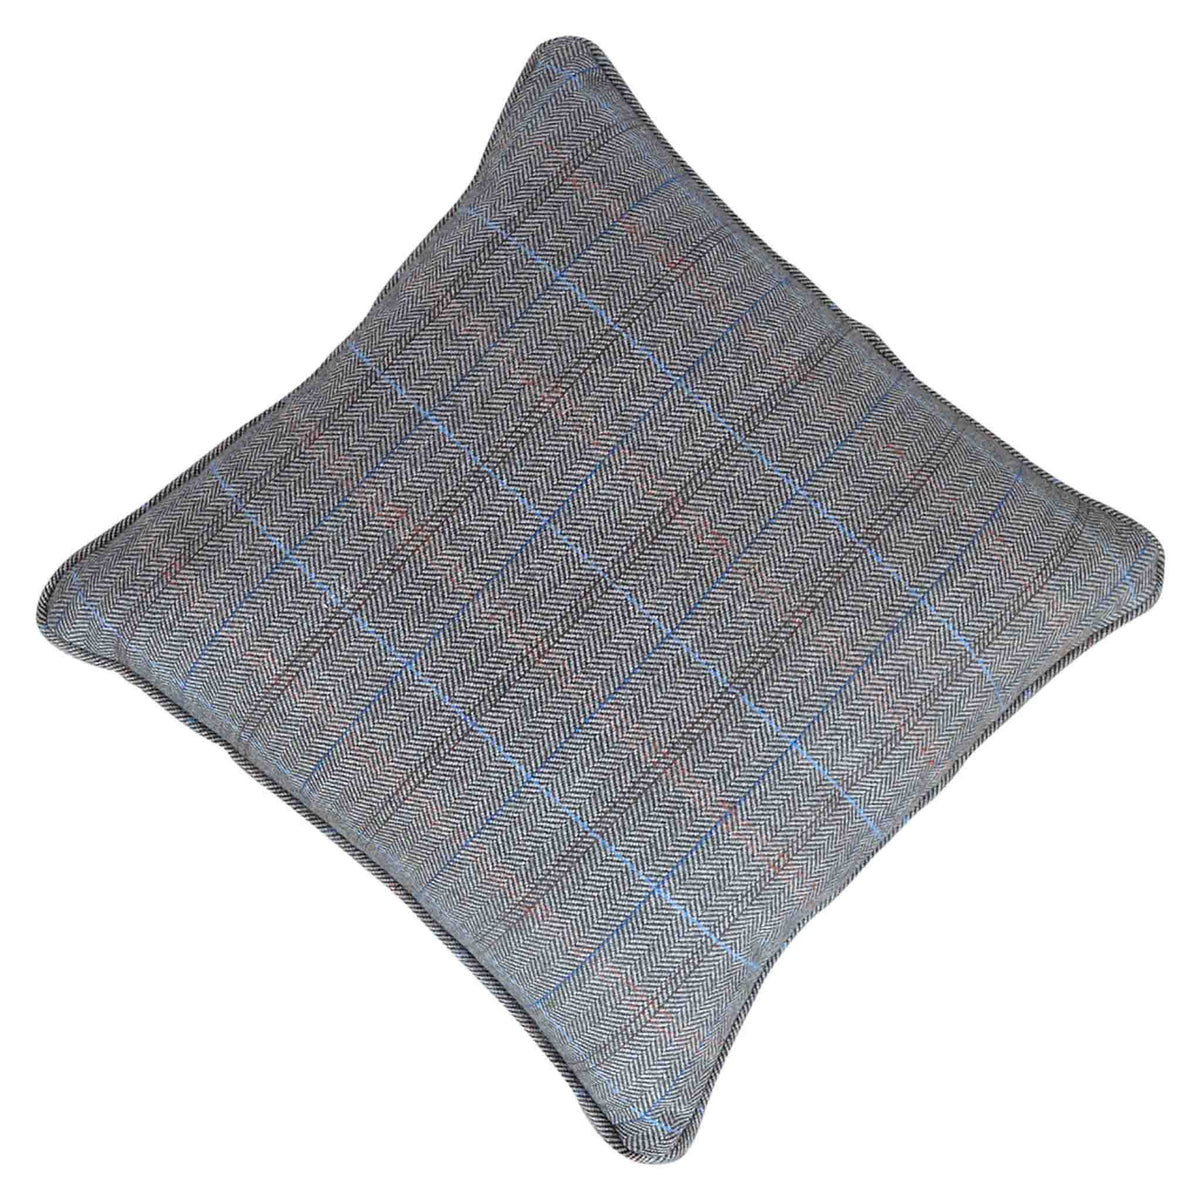 The Artisan Grey Multi Tweed Fabric Cushion